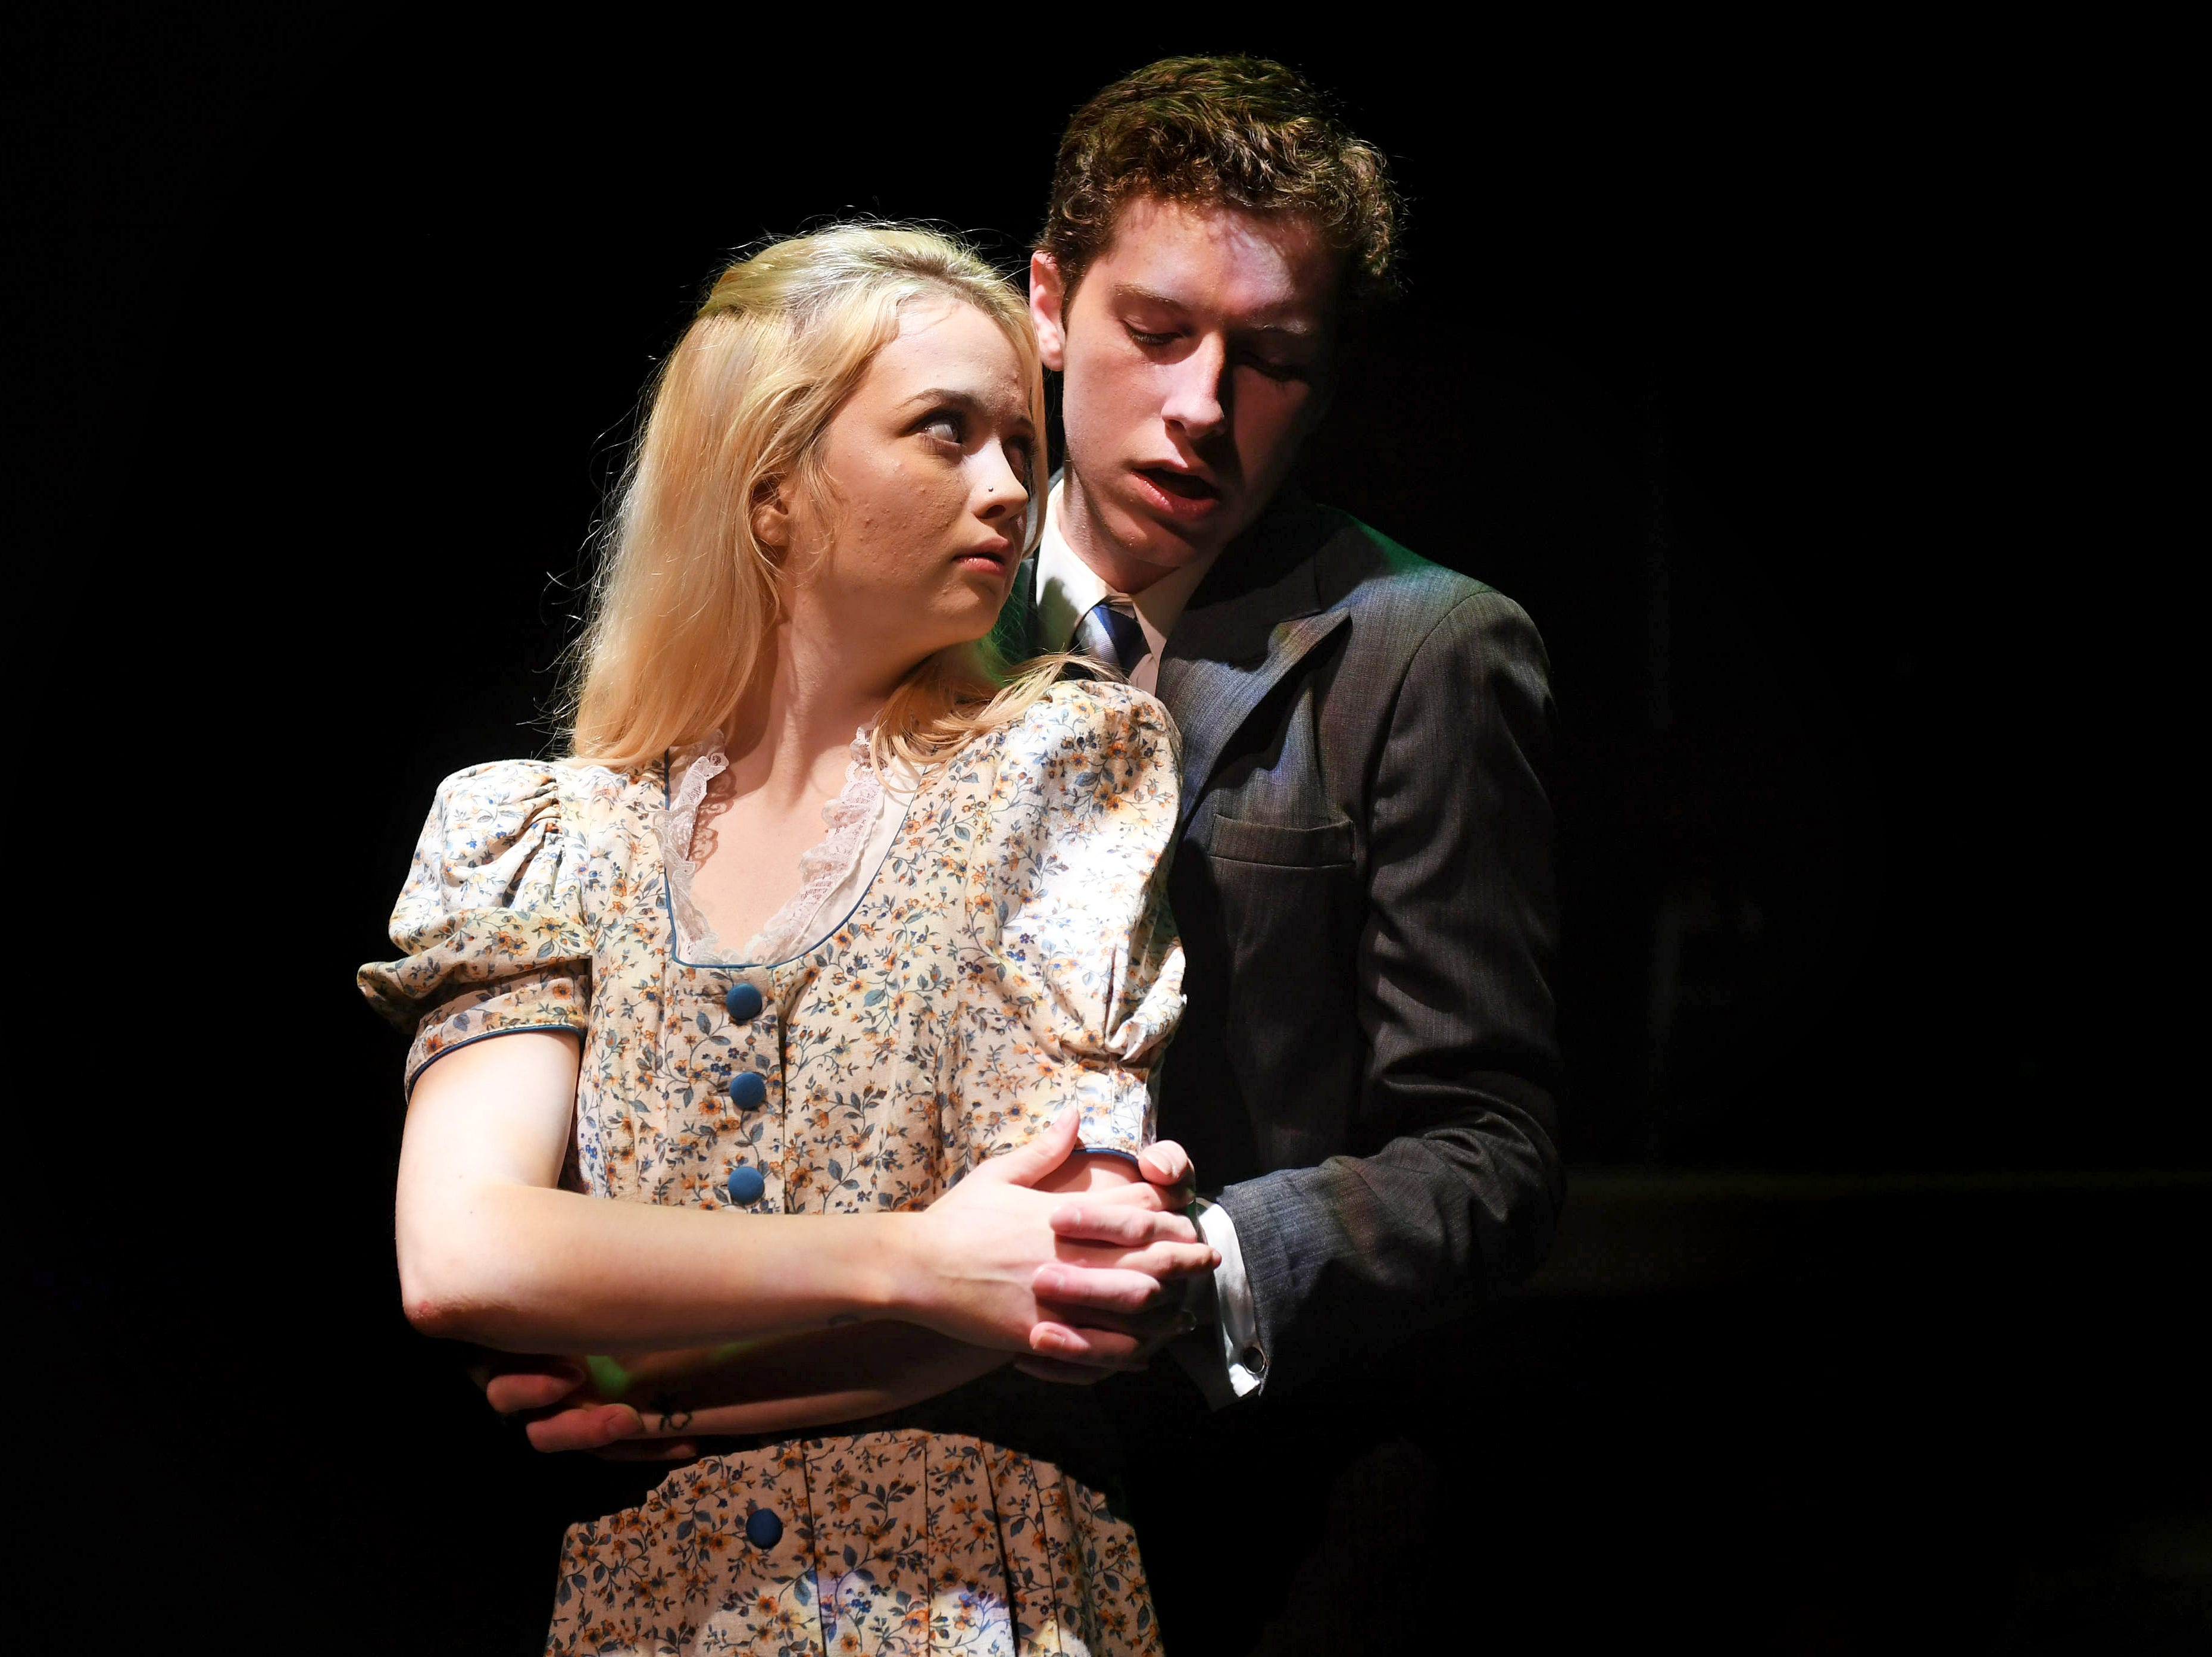 """Wendla (Hannah MacGregor) and Melchior (Spencer Lail) struggle with their intense feelings for each other in """"Spring Awakening."""""""